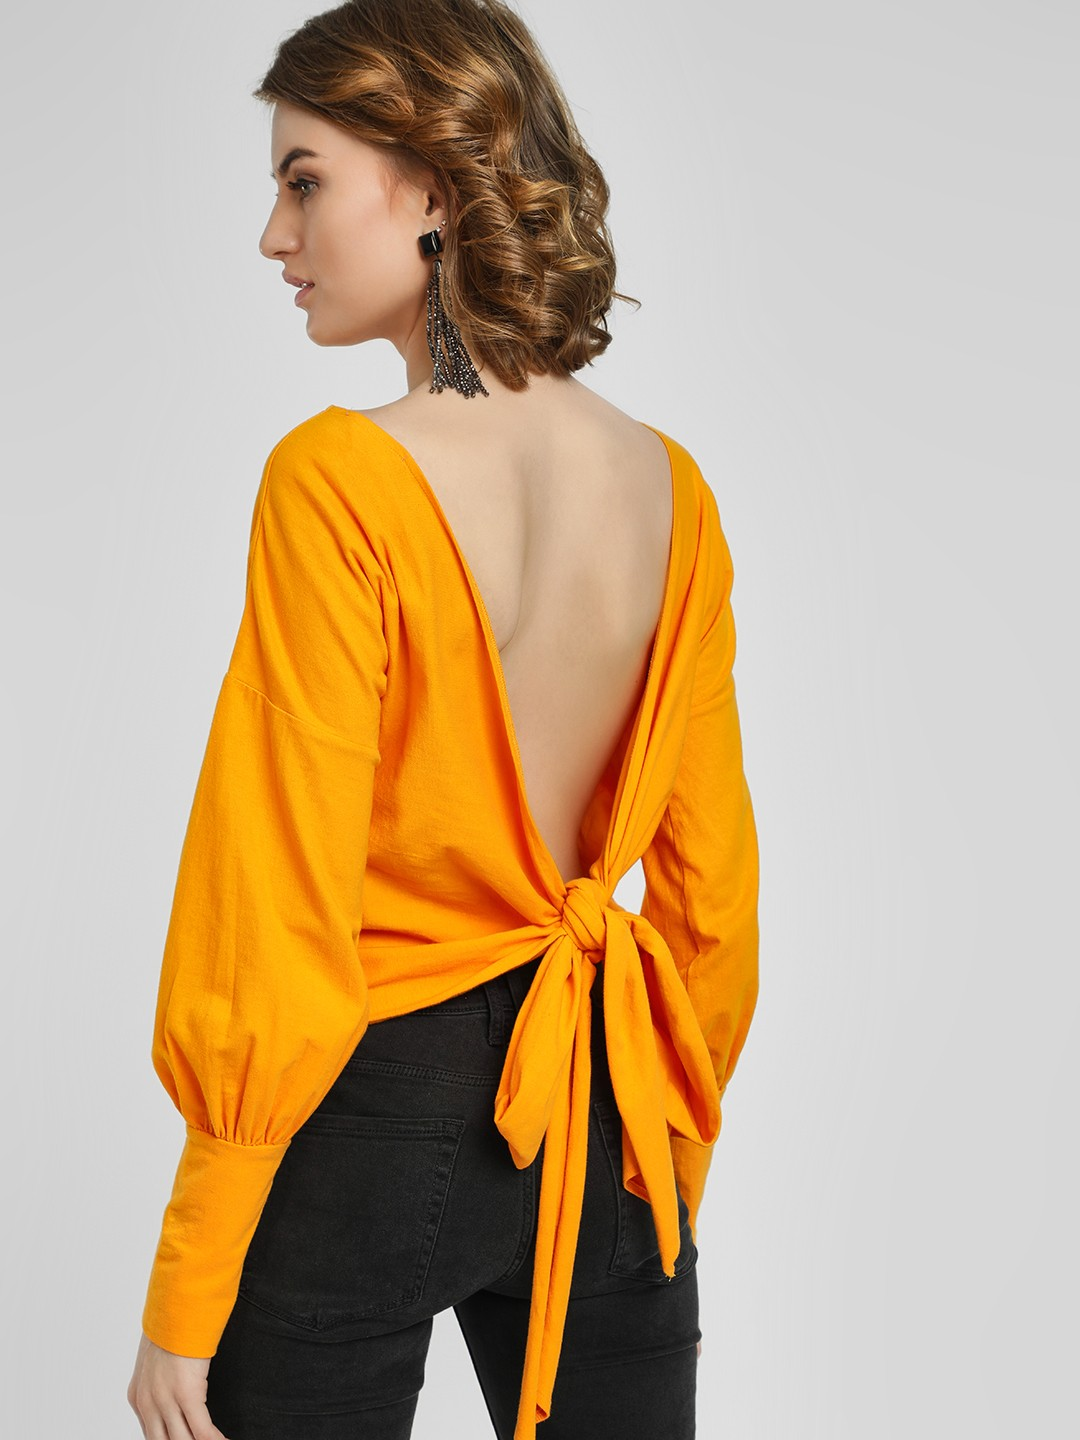 Ri-Dress Yellow Deep Back Bow Tie Top 1